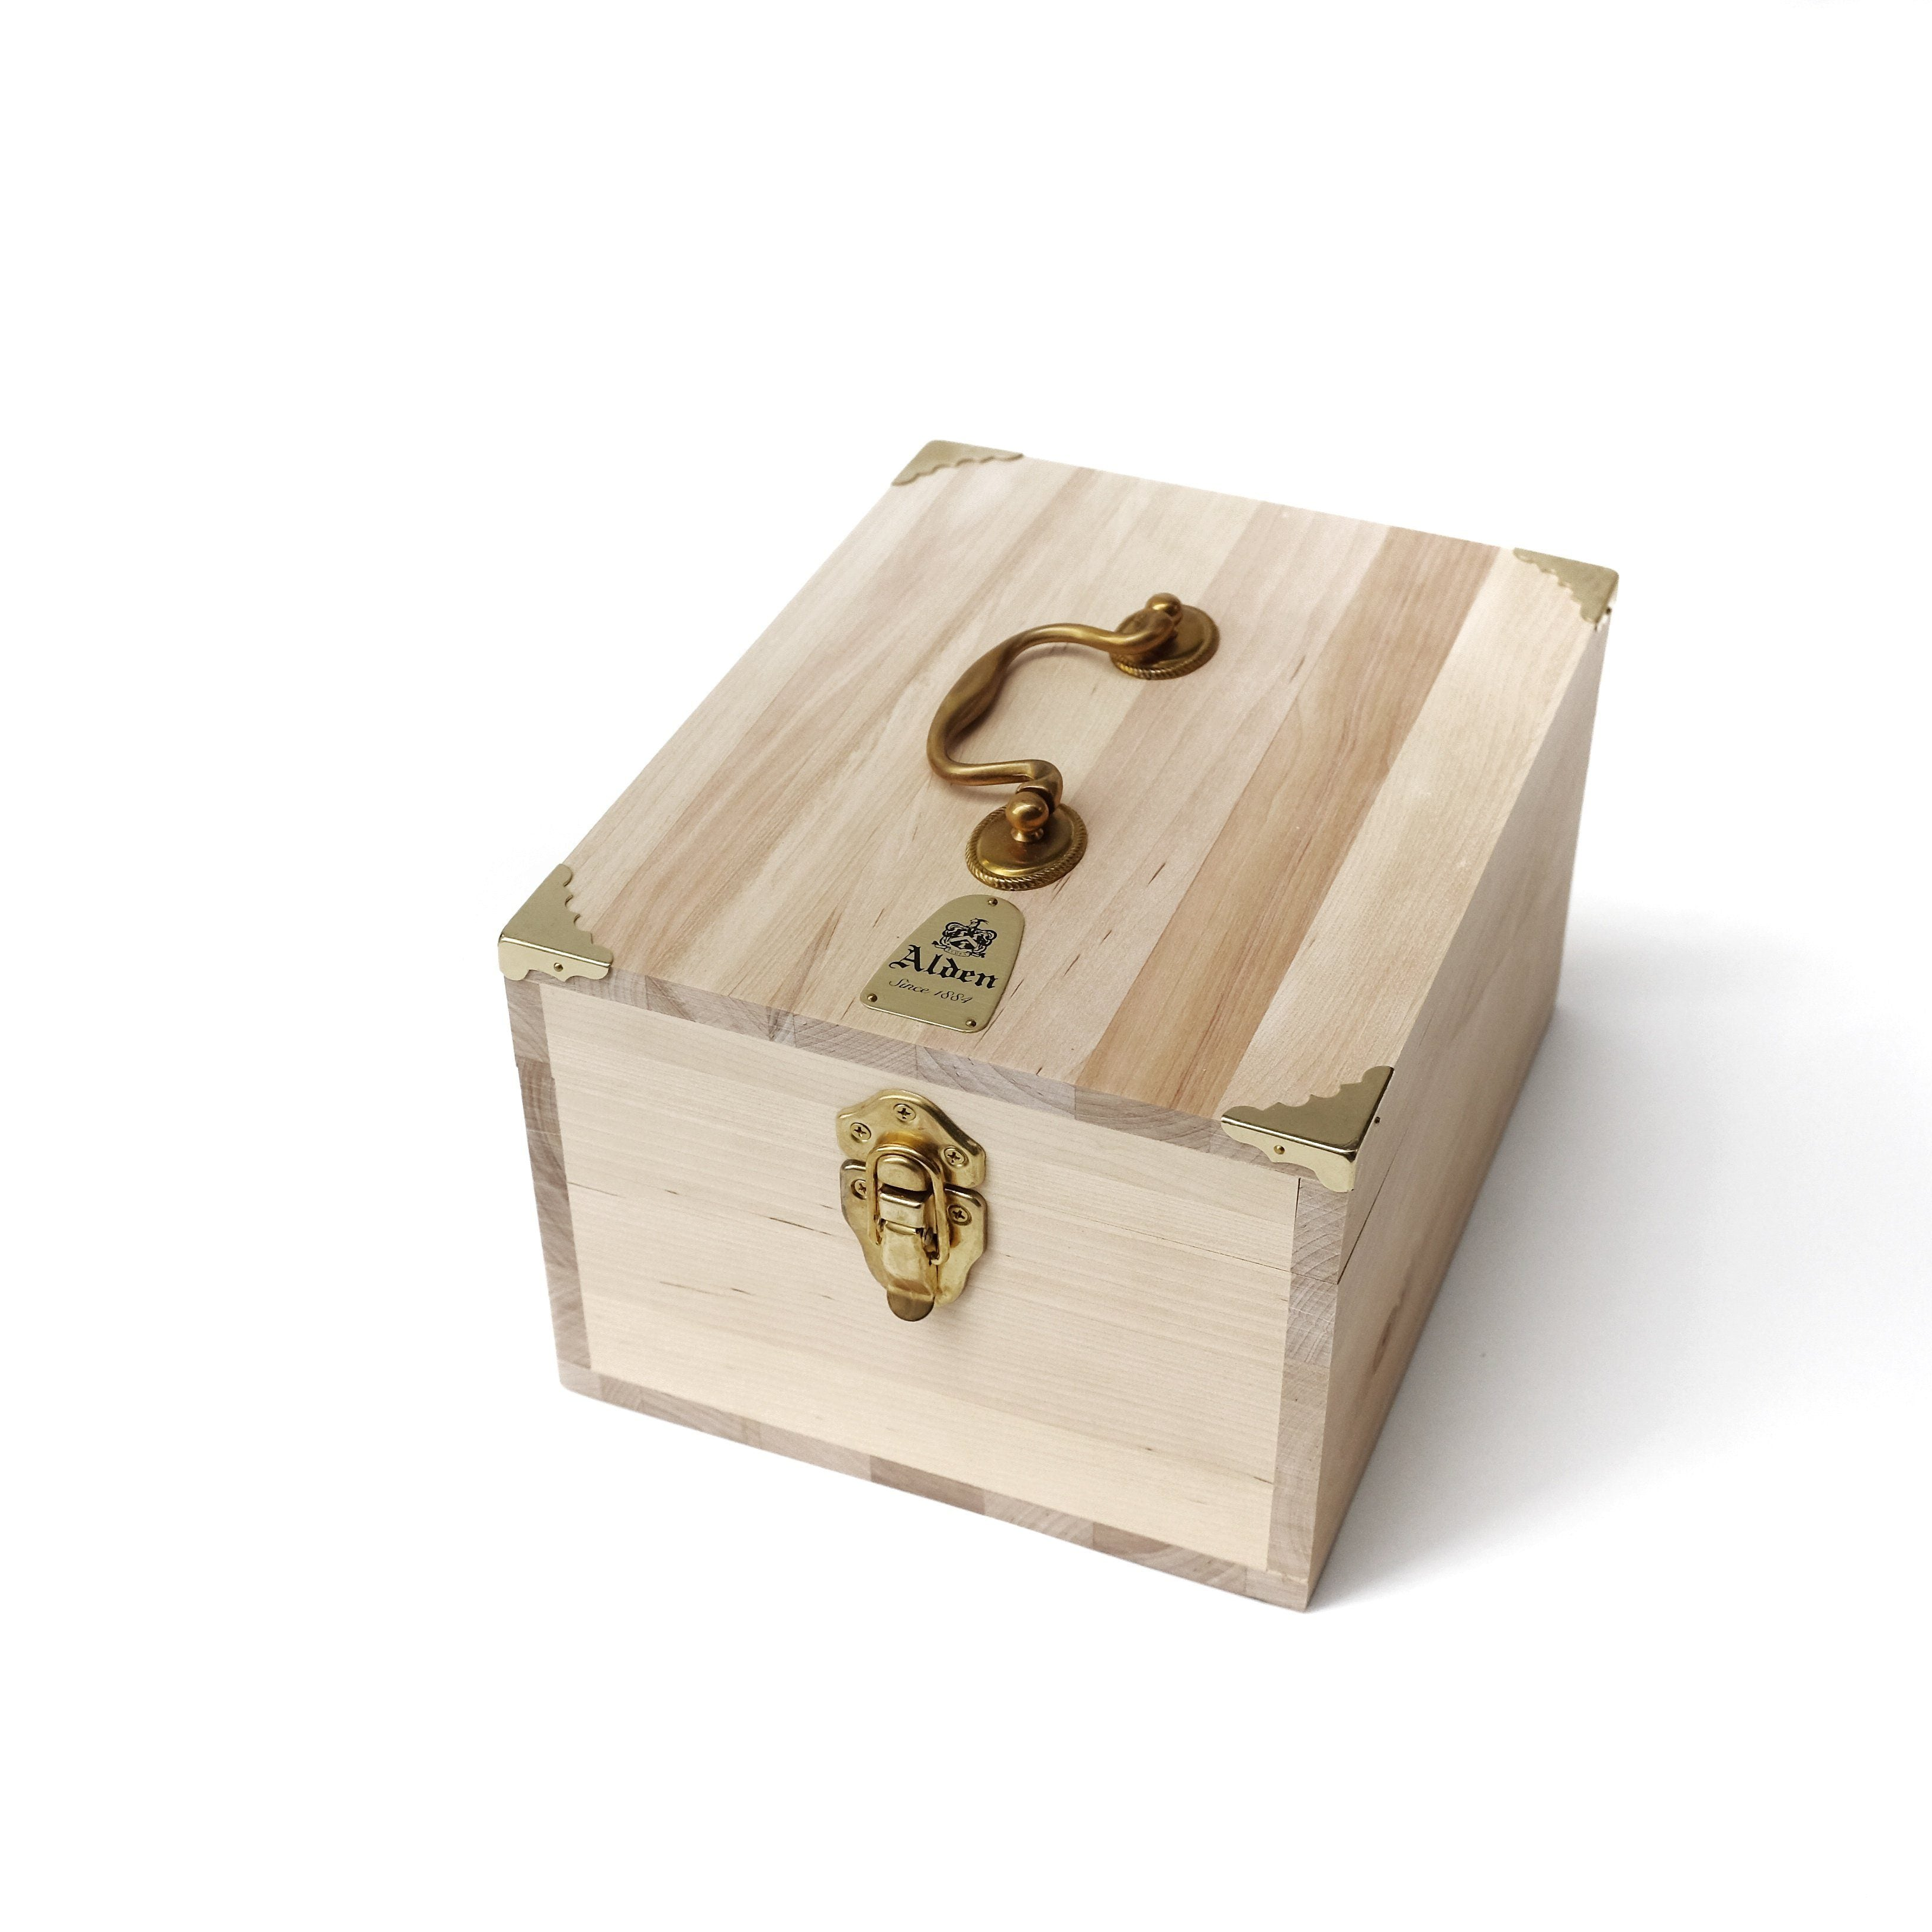 ALDEN SC0340 Wooden Valet Box